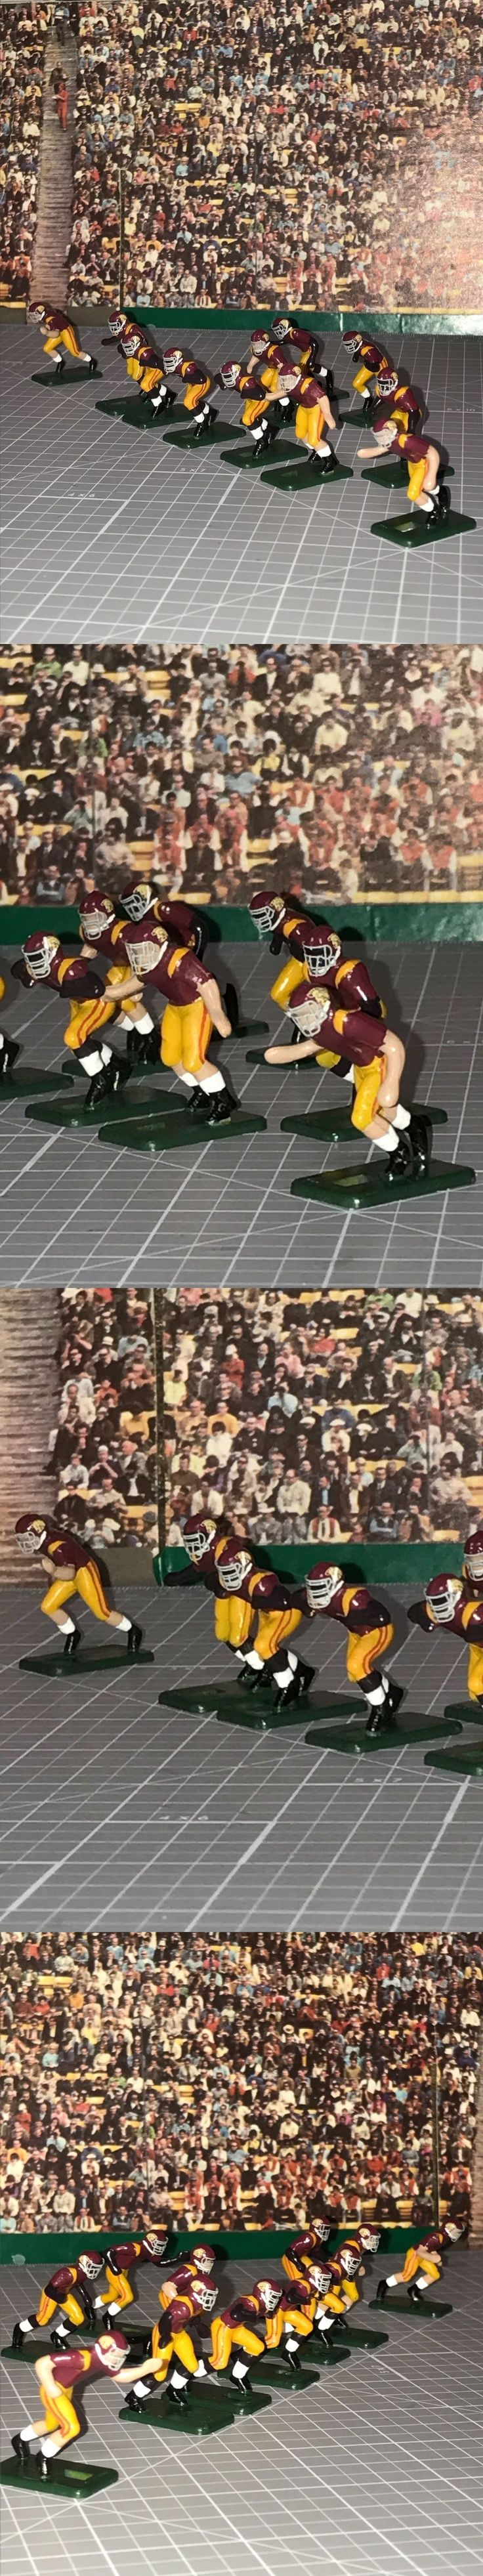 Electronic Games 2540: Tudor Electric Football Game Ncaa Usc Trojans 11 Players W Masks And Straps New! -> BUY IT NOW ONLY: $35 on eBay!